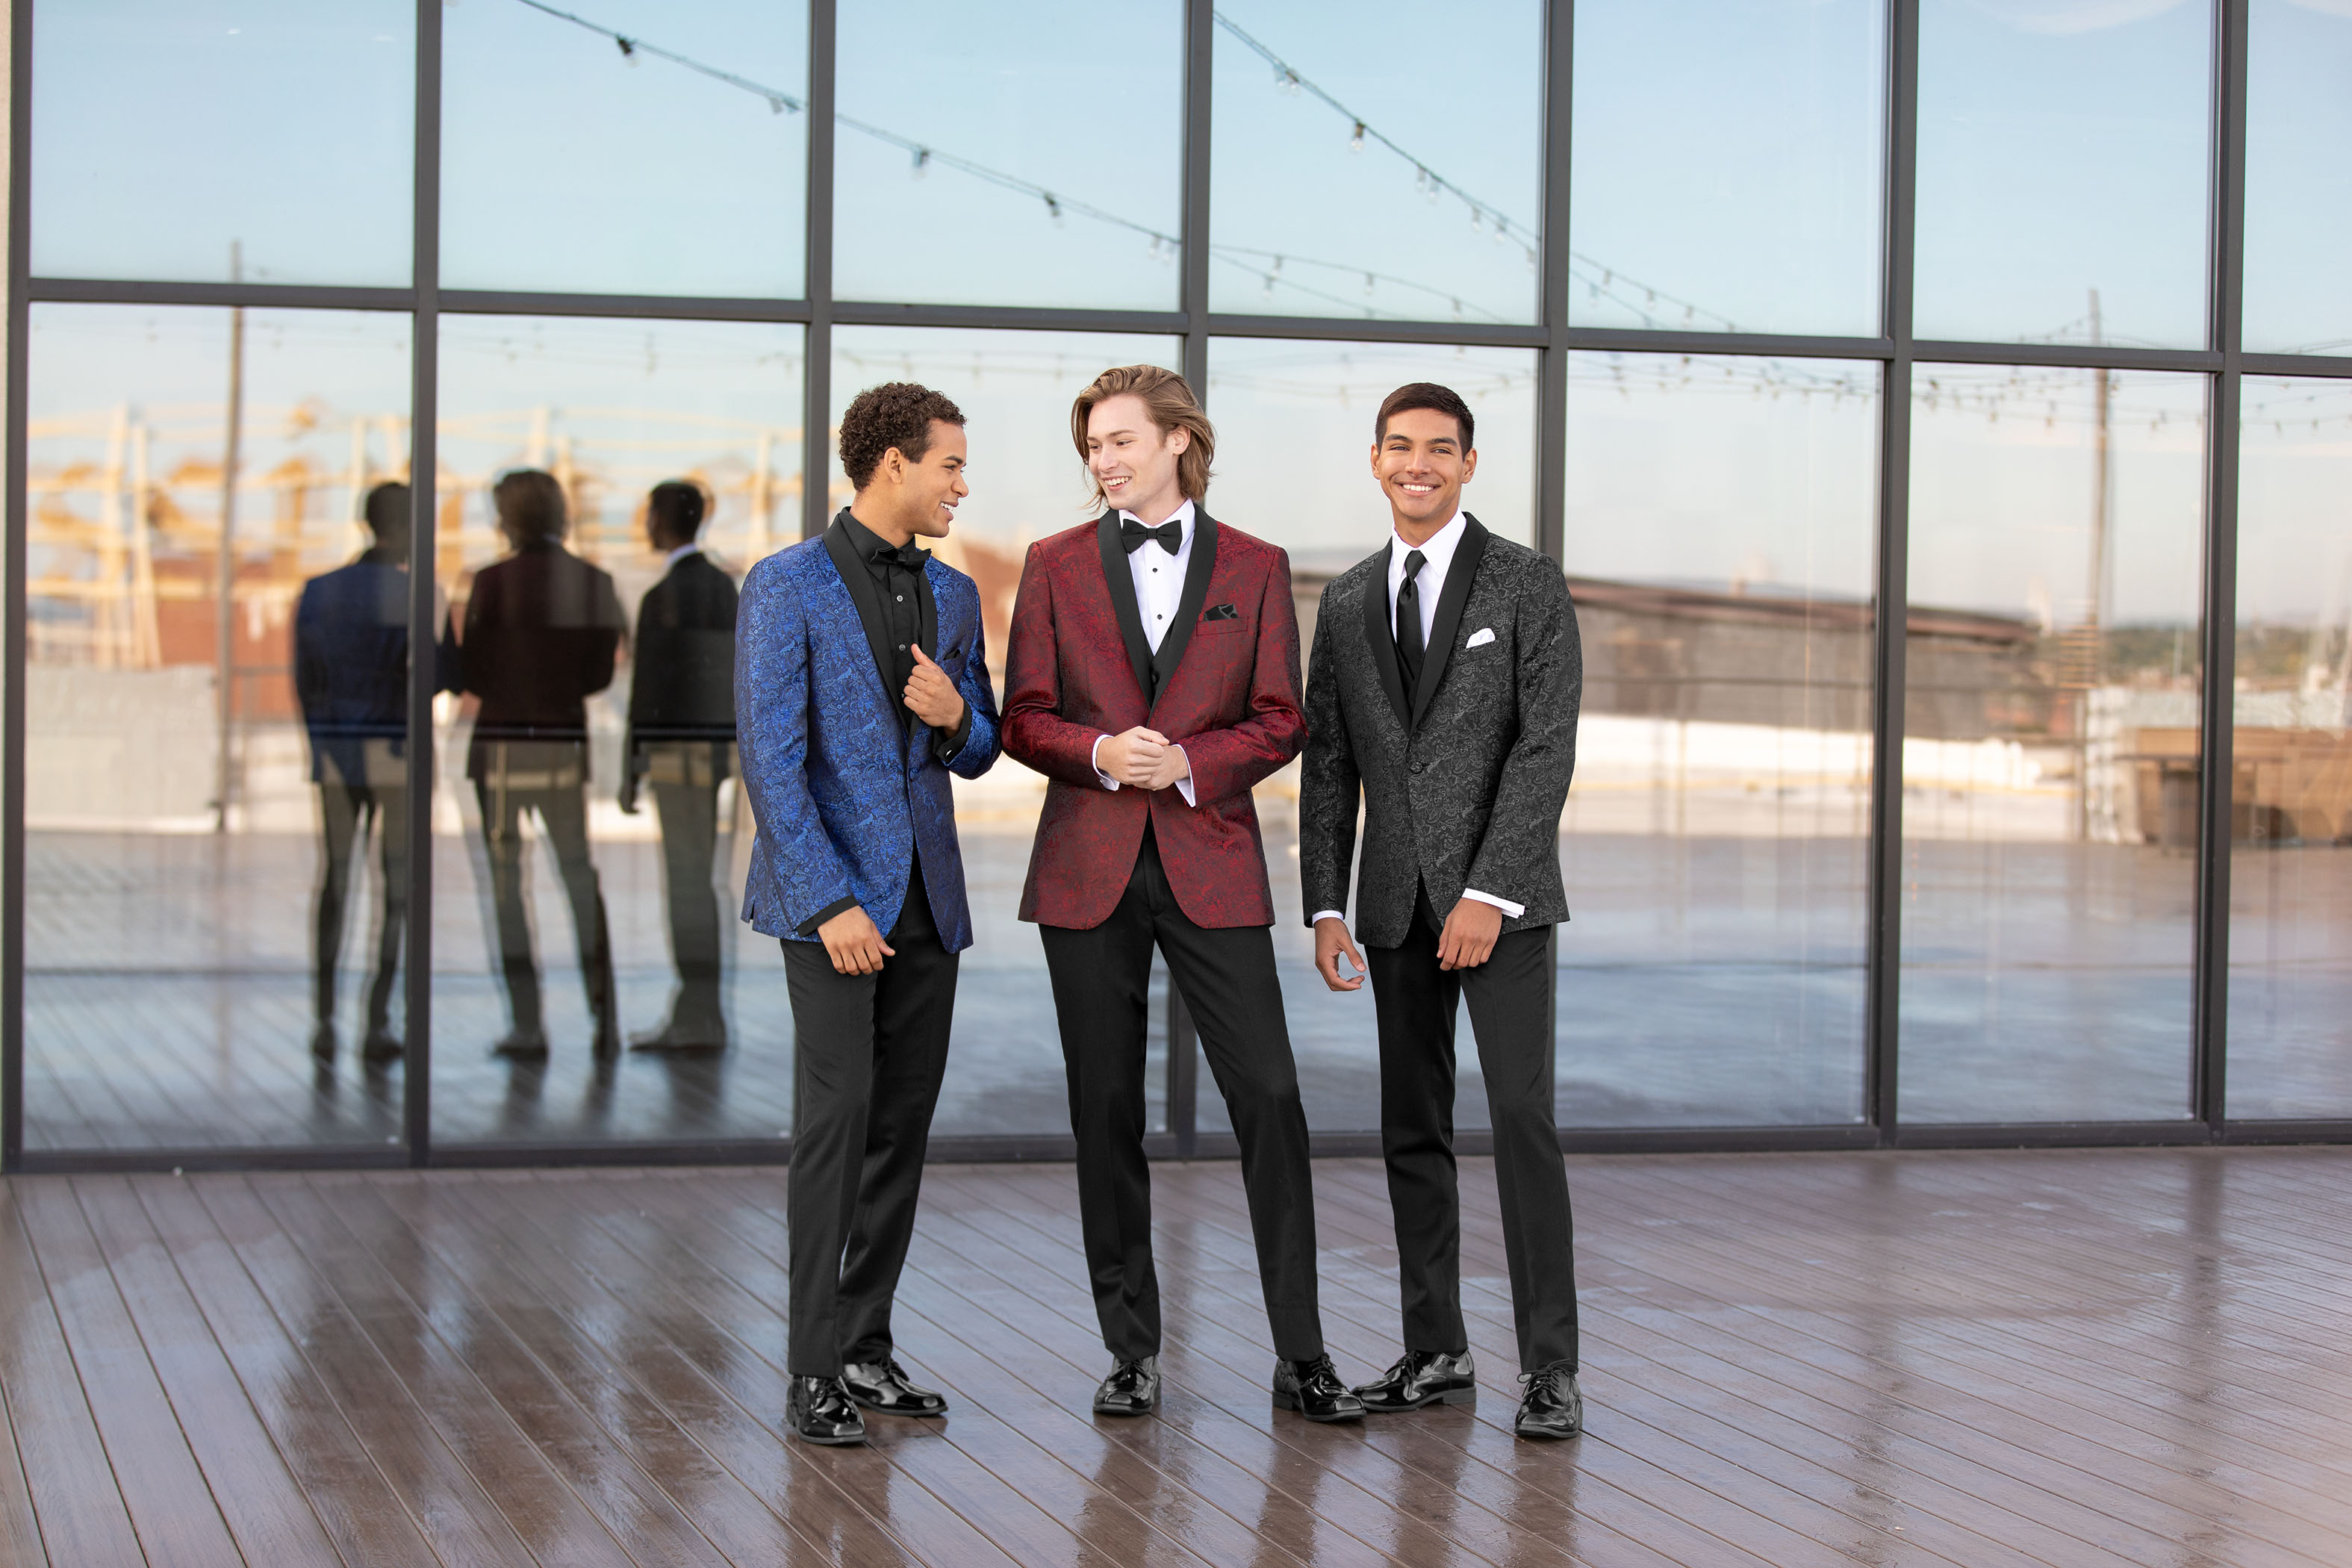 New Tux Trends to Try - Three young men standing together in unique patterned and color tuxes